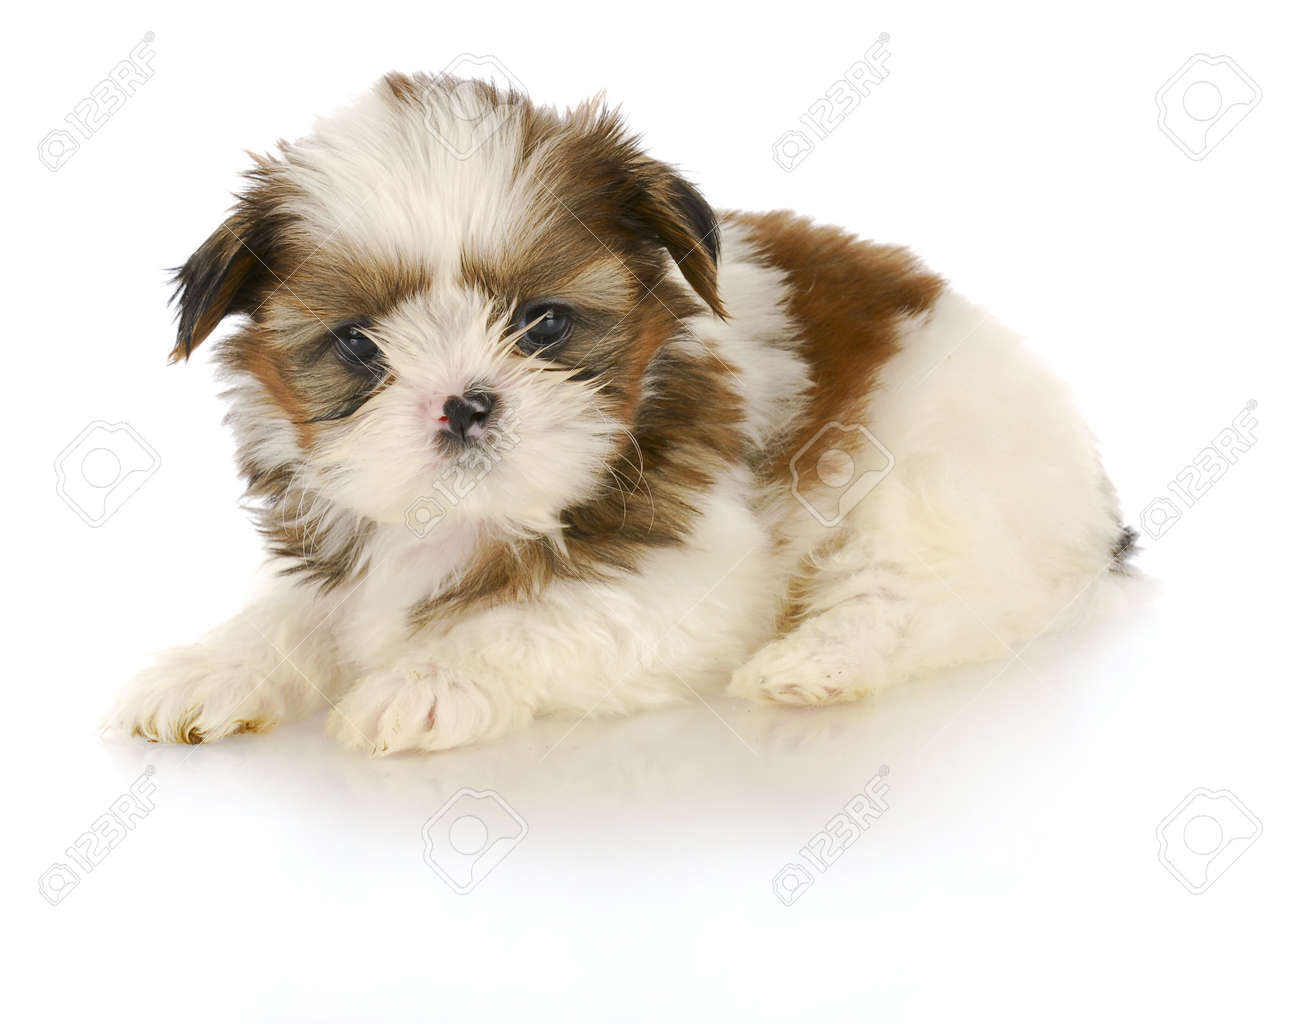 Adorable Shih Tzu Puppy Laying Down On White Background 6 Weeks